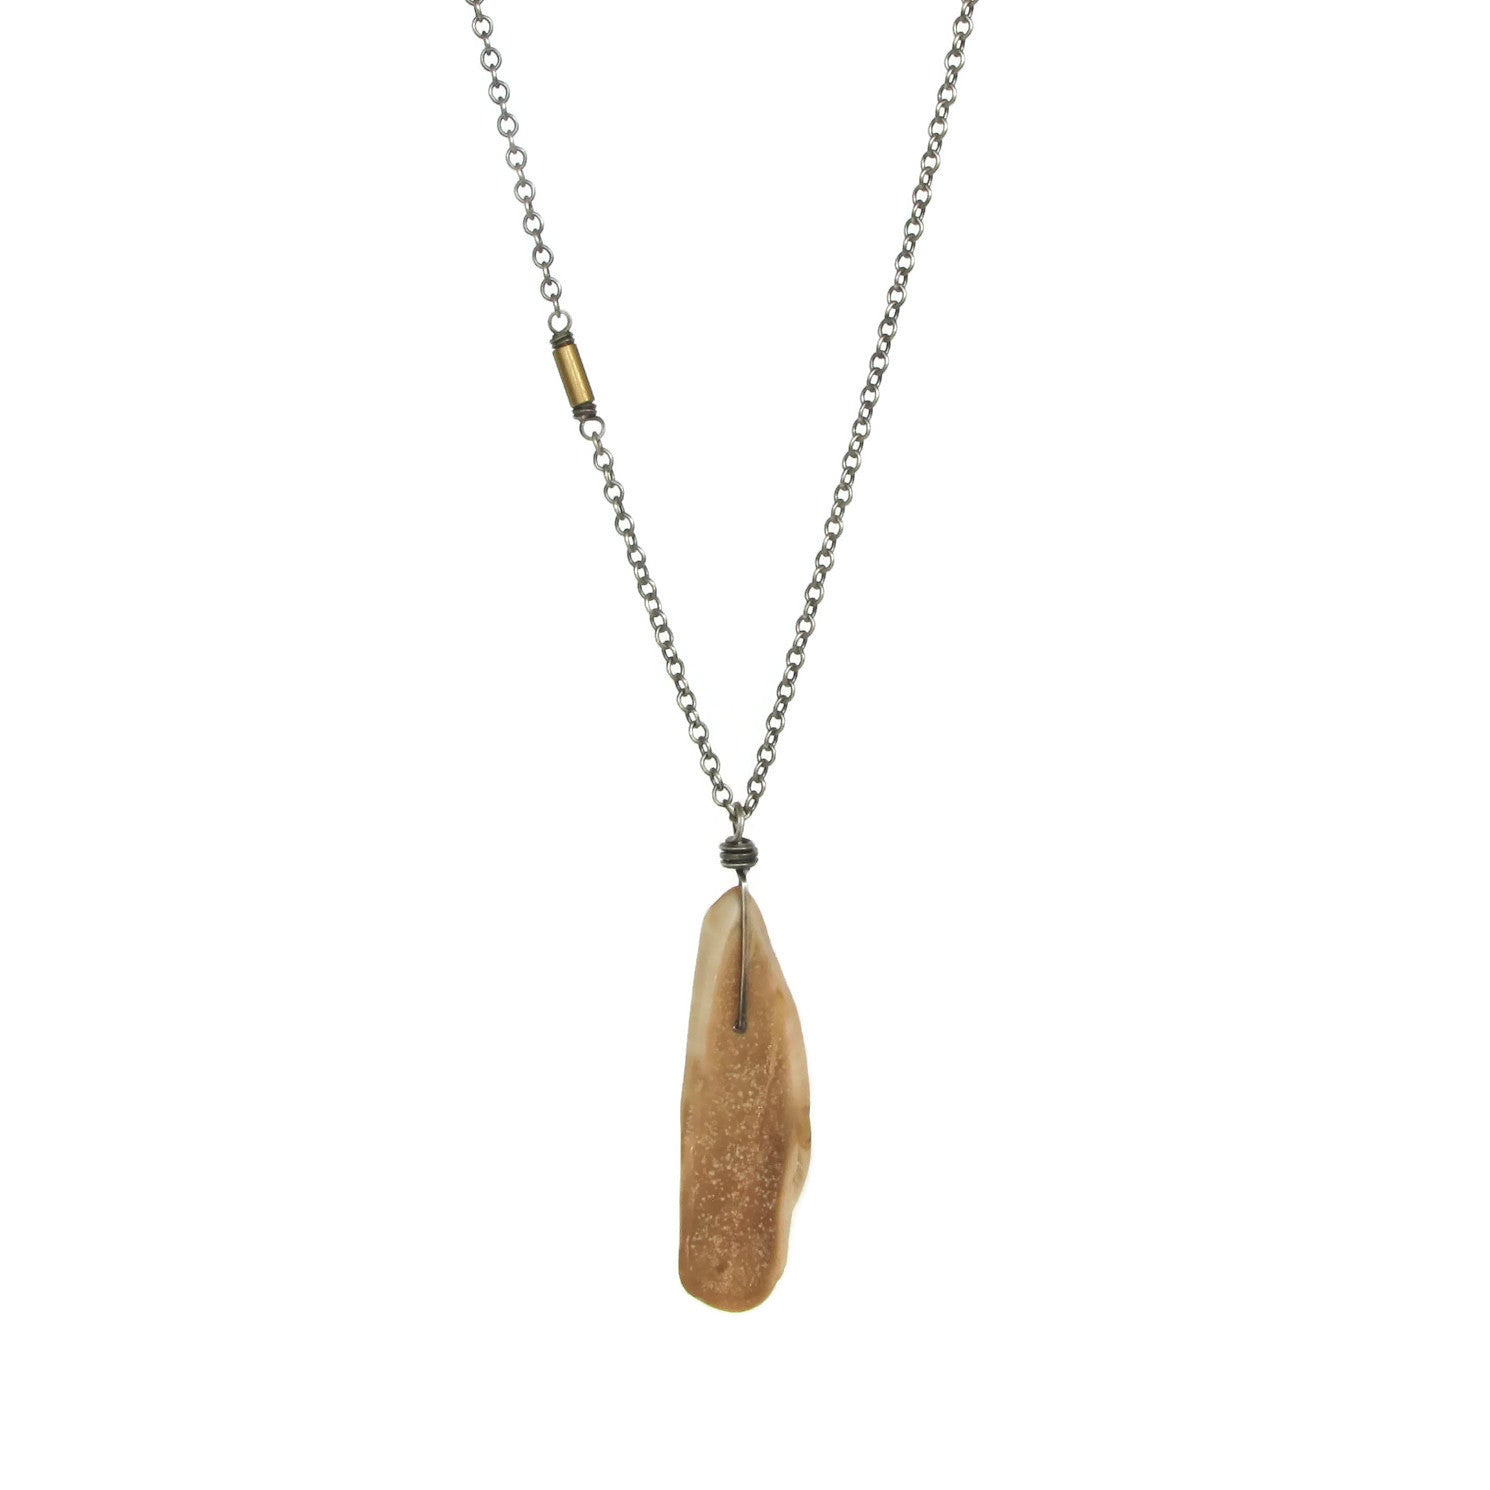 tusk necklace product ia pendant estela talis